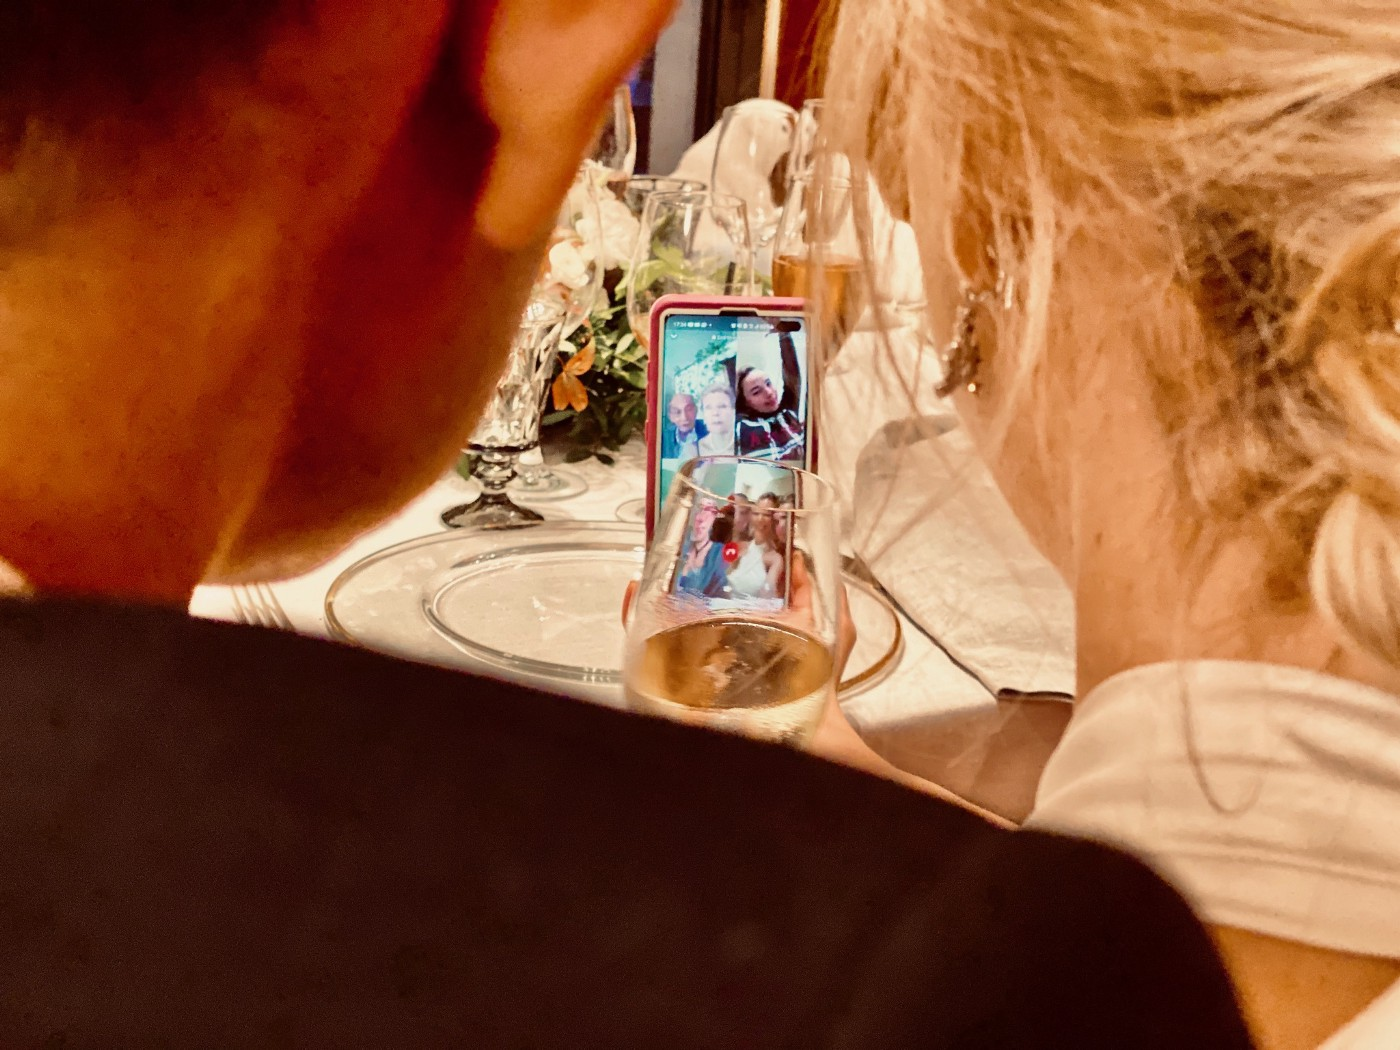 A couple speaking with loved ones via Zoom during their pandemic wedding